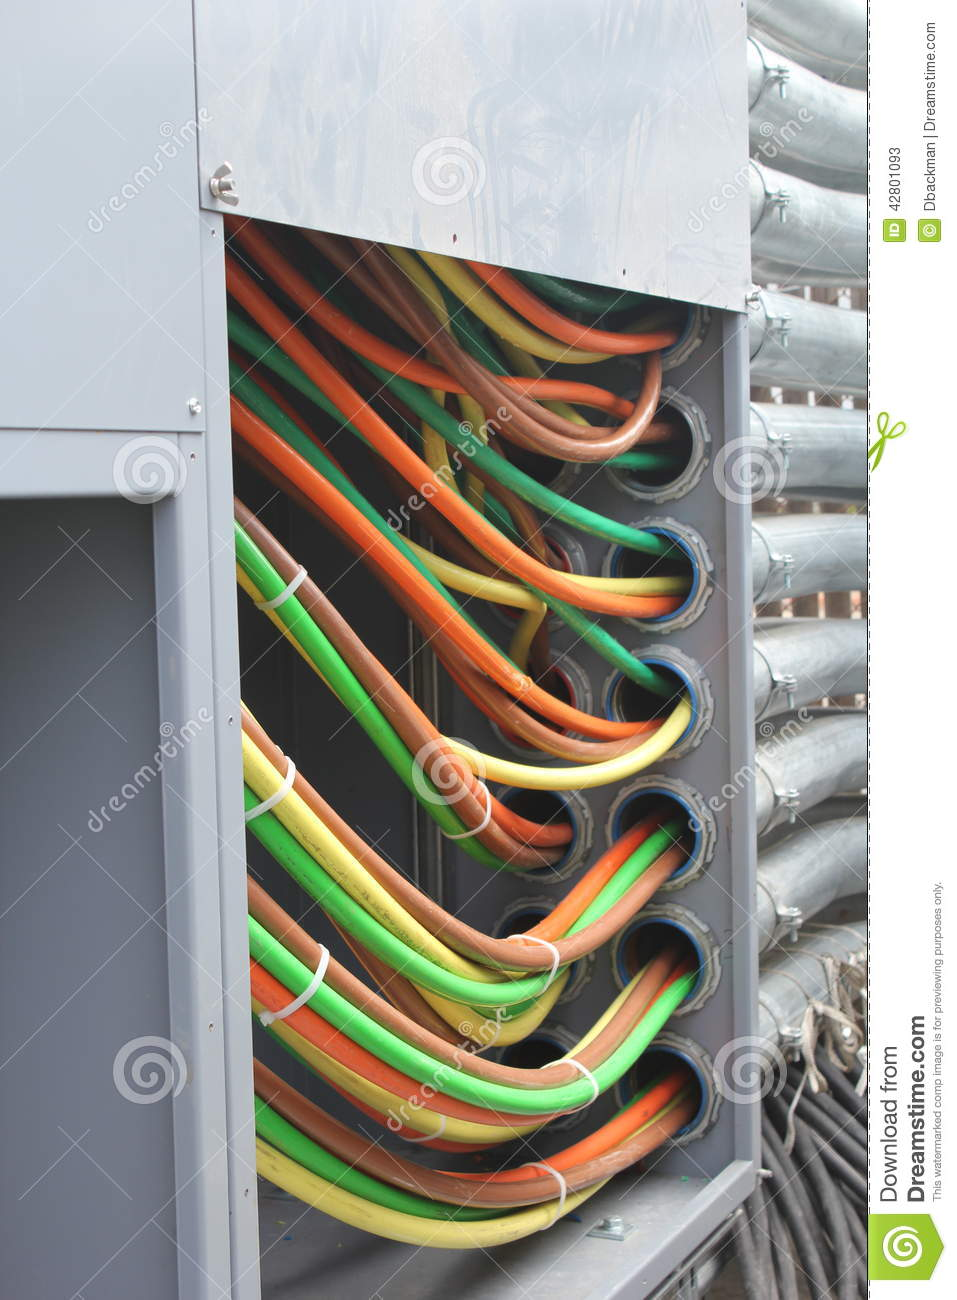 High Voltage Wiring Stock Image Of System Cogen 42801093 Cable Contractor Cogeneration Generator Ups Electrical Installation Pipe